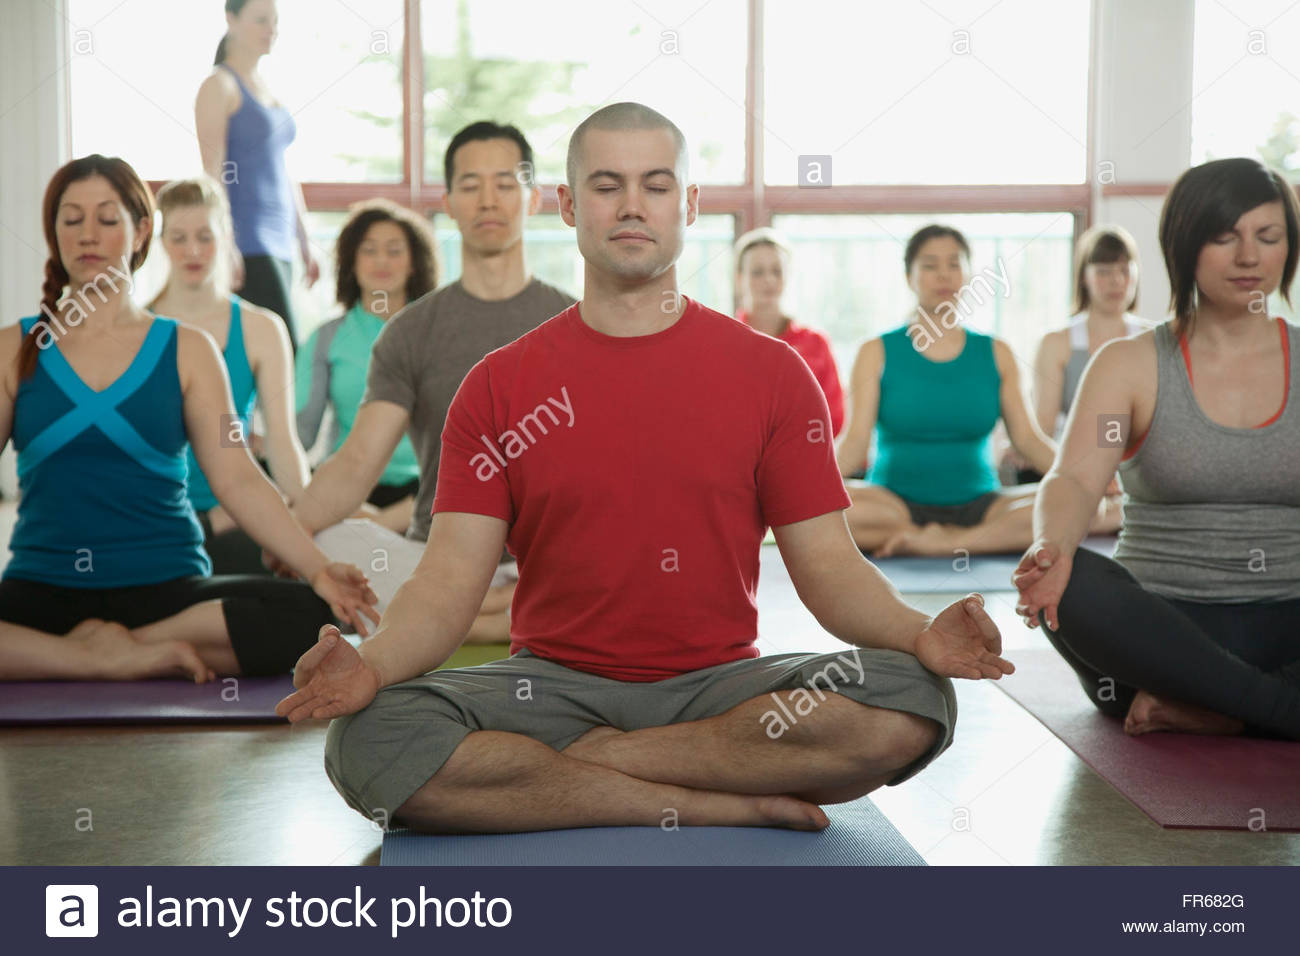 yoga class in the lotus position - Stock Image